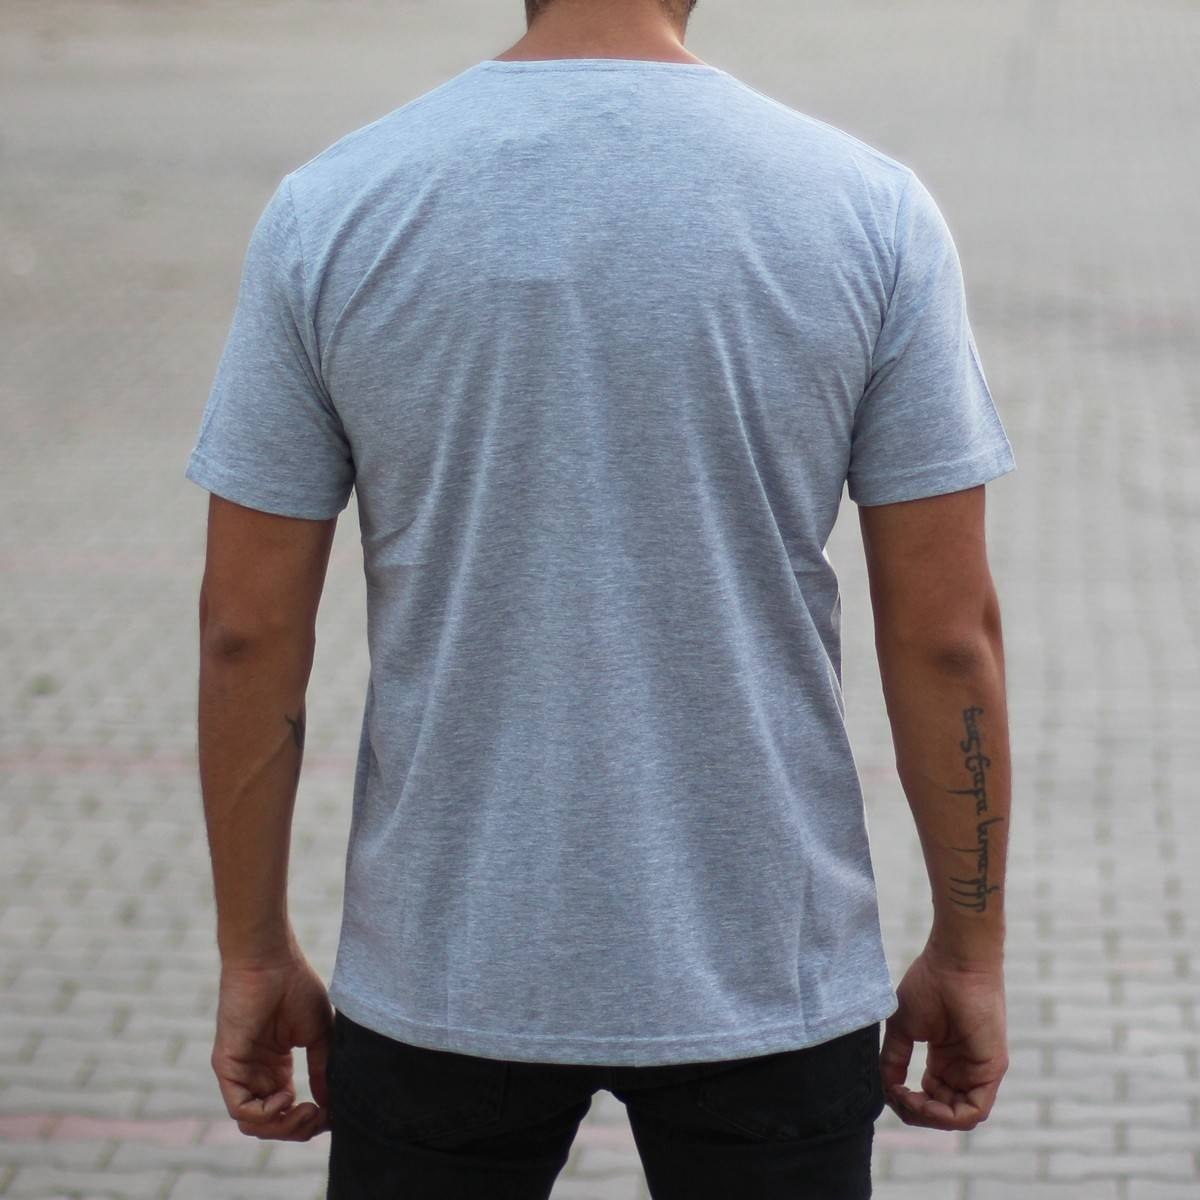 Men's Oversized Basic T-Shirt Gray Mv Premium Brand - 3